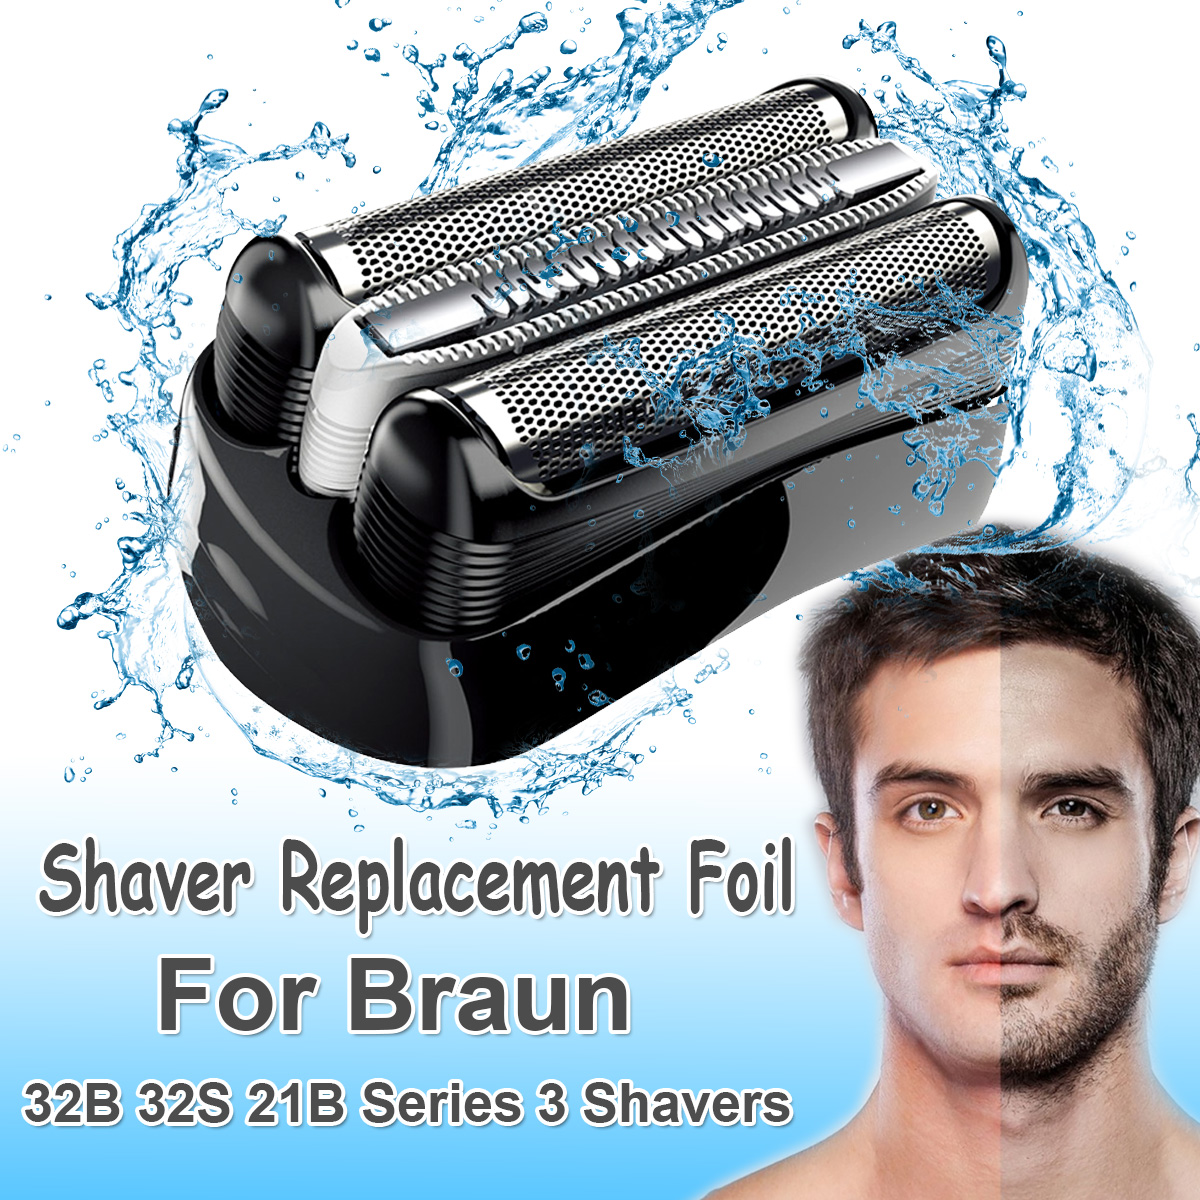 Replacement Shaver Foil Head for Braun 32B 32S 21B for Cruzer6 Series 3 301S 310S 320S 360S 3000S 3010S 3020S 350CC Head Blade(China)